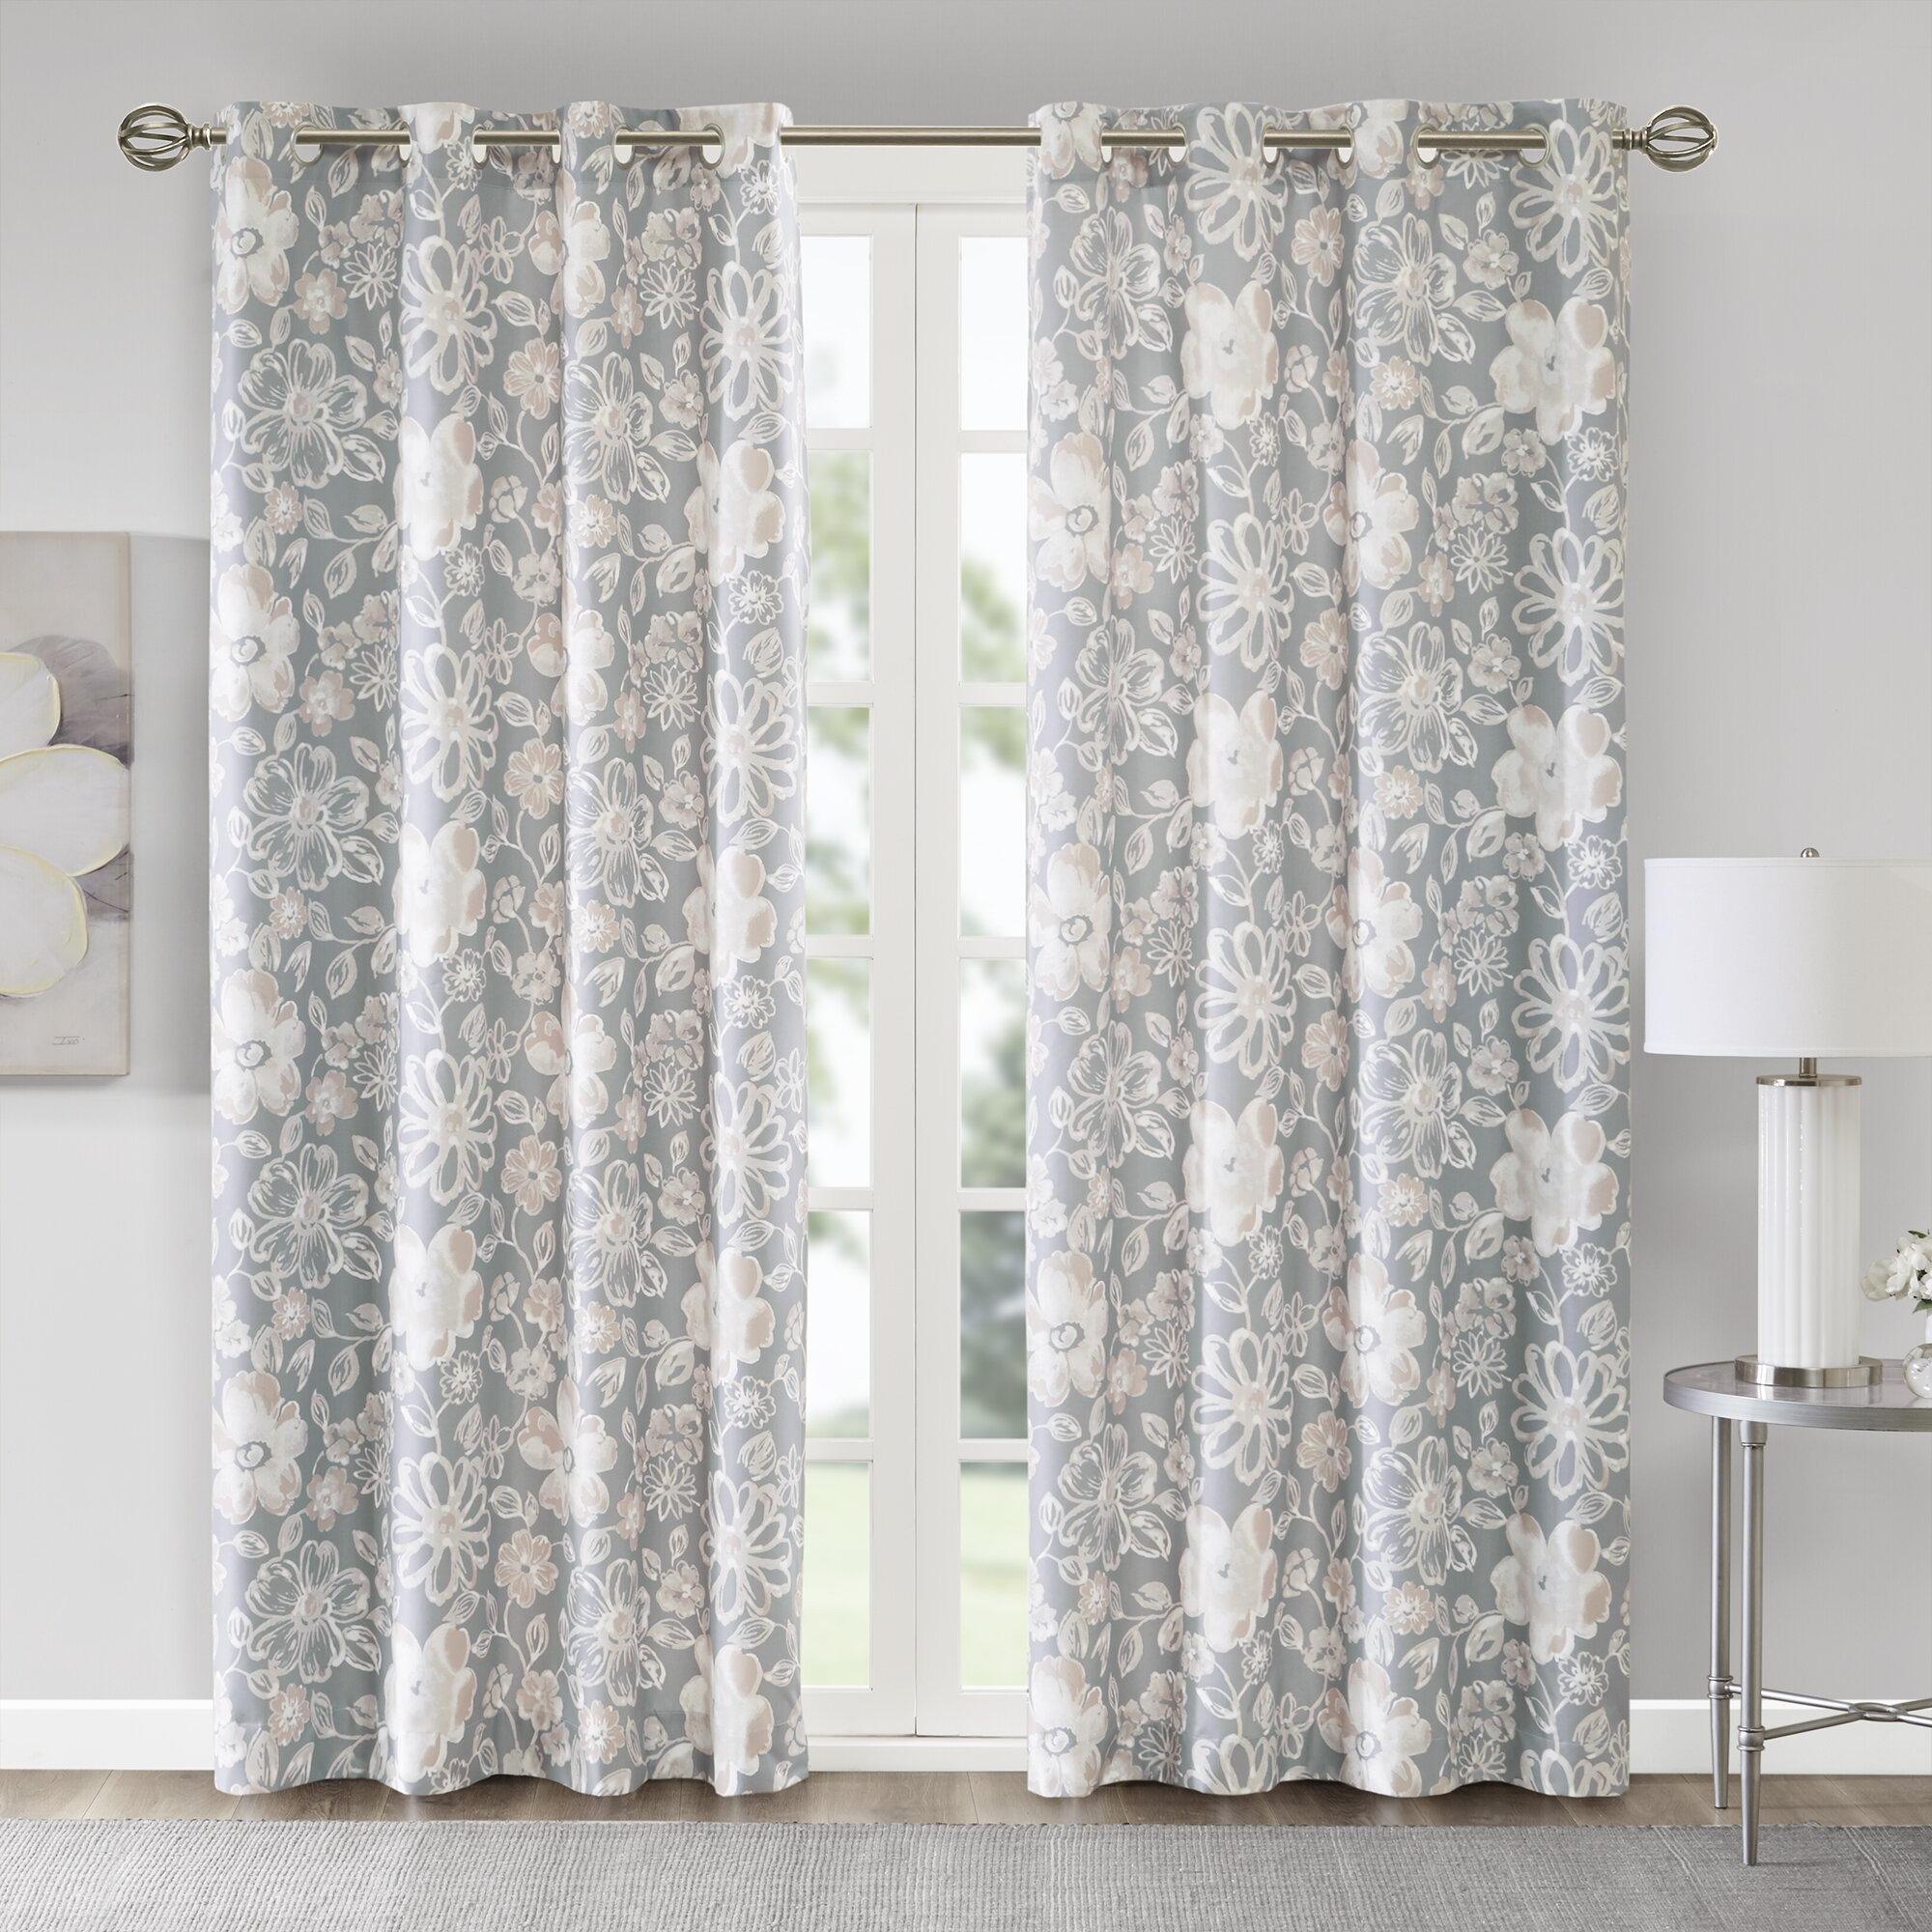 House Of Hampton Jocelyn Lily Floral/flower Room Darkening inside Floral Pattern Room Darkening Window Curtain Panel Pairs (Image 9 of 20)